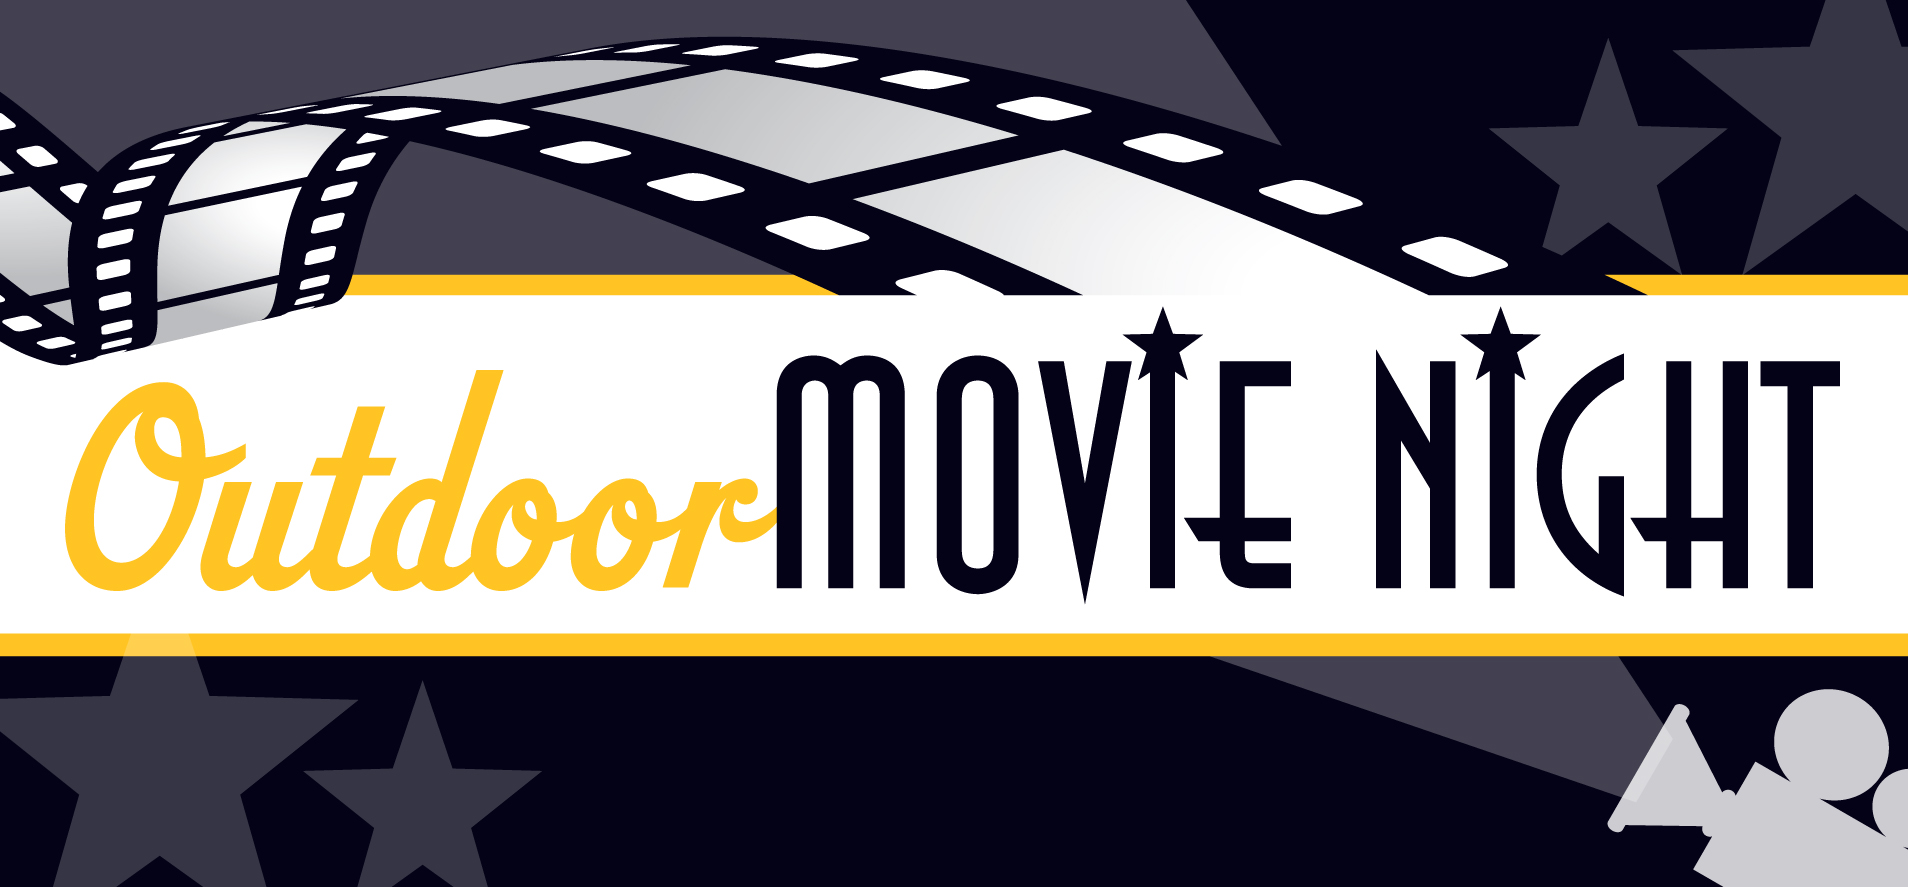 Movie clipart nite Movie WikiClipArt night Outdoor Outdoor